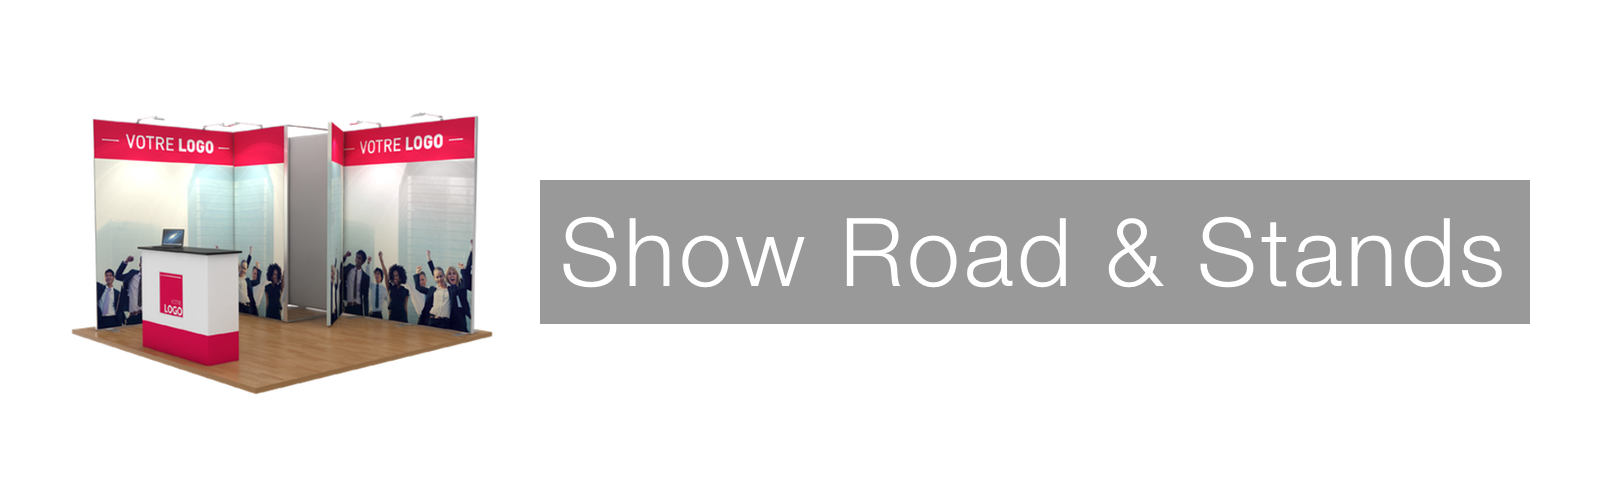 show-road-stands